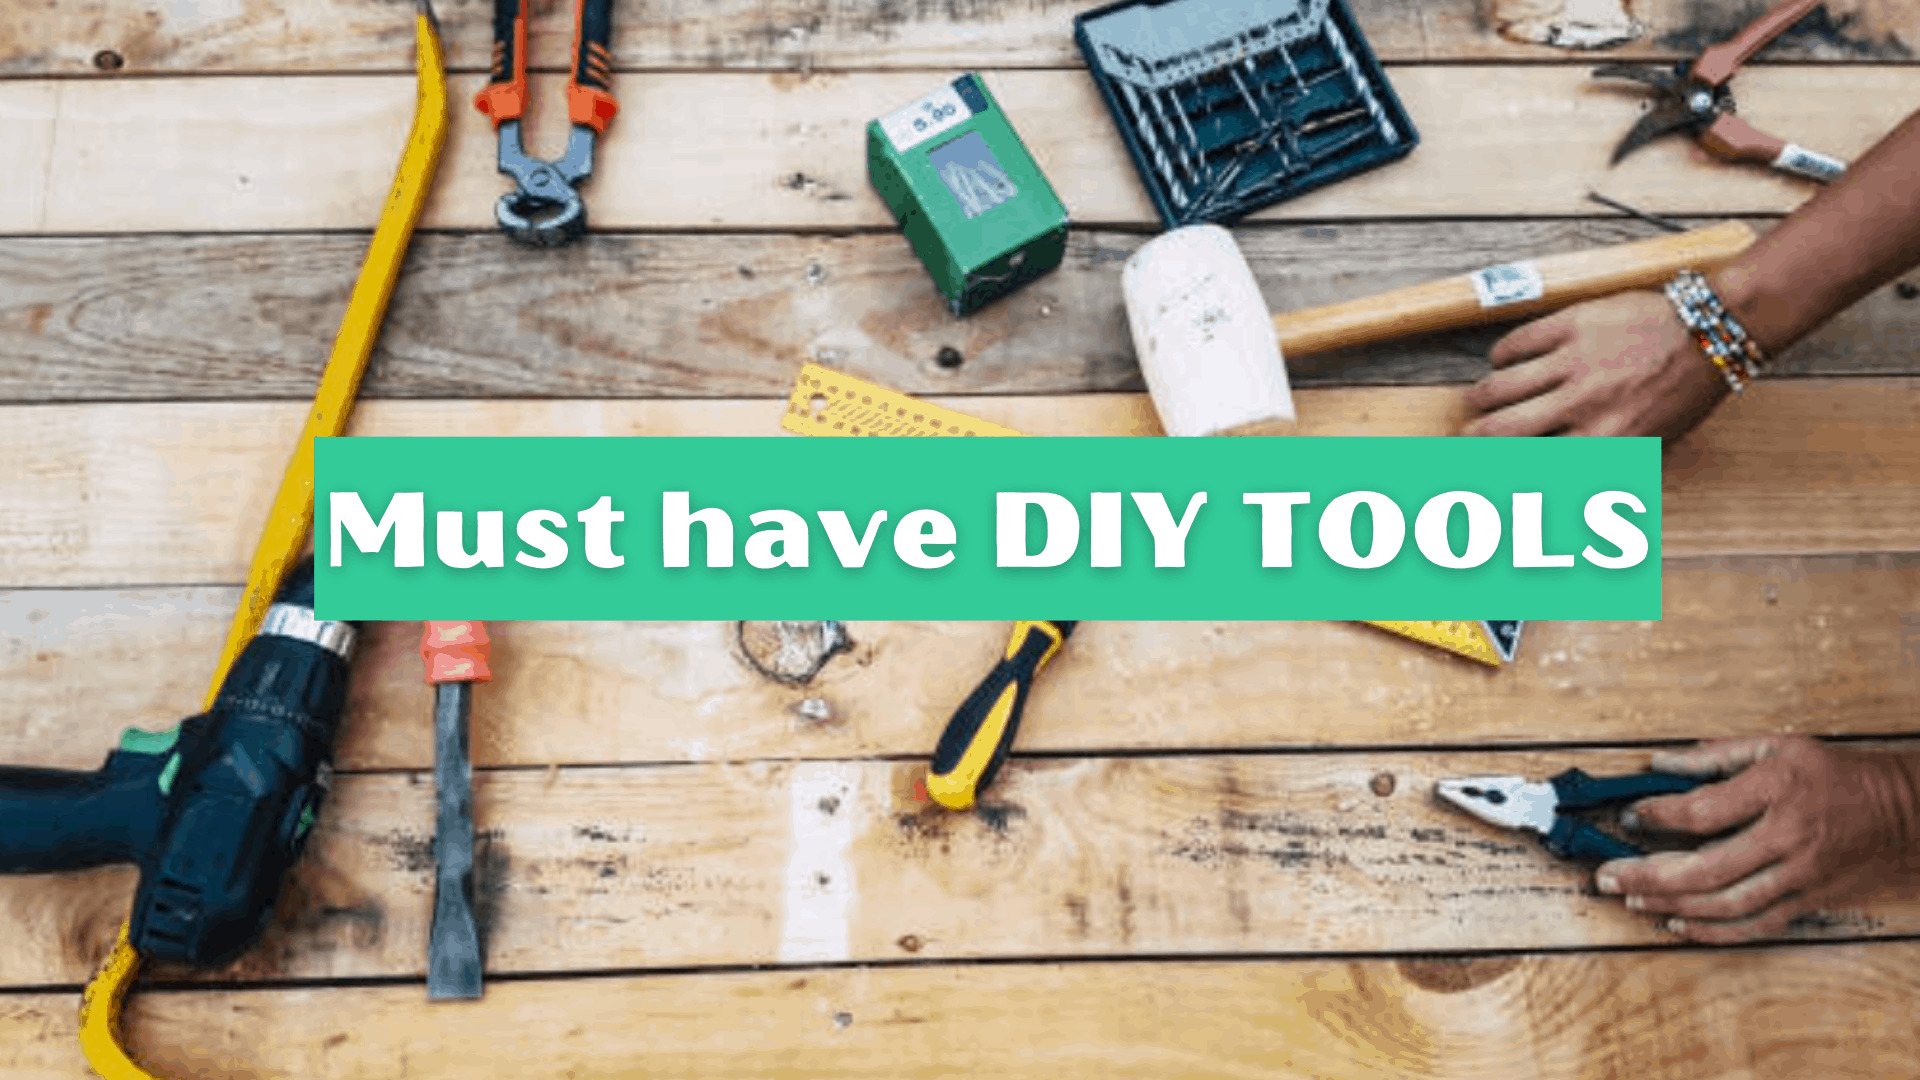 Must have DIY tools | Every toolbox should contain this top 10